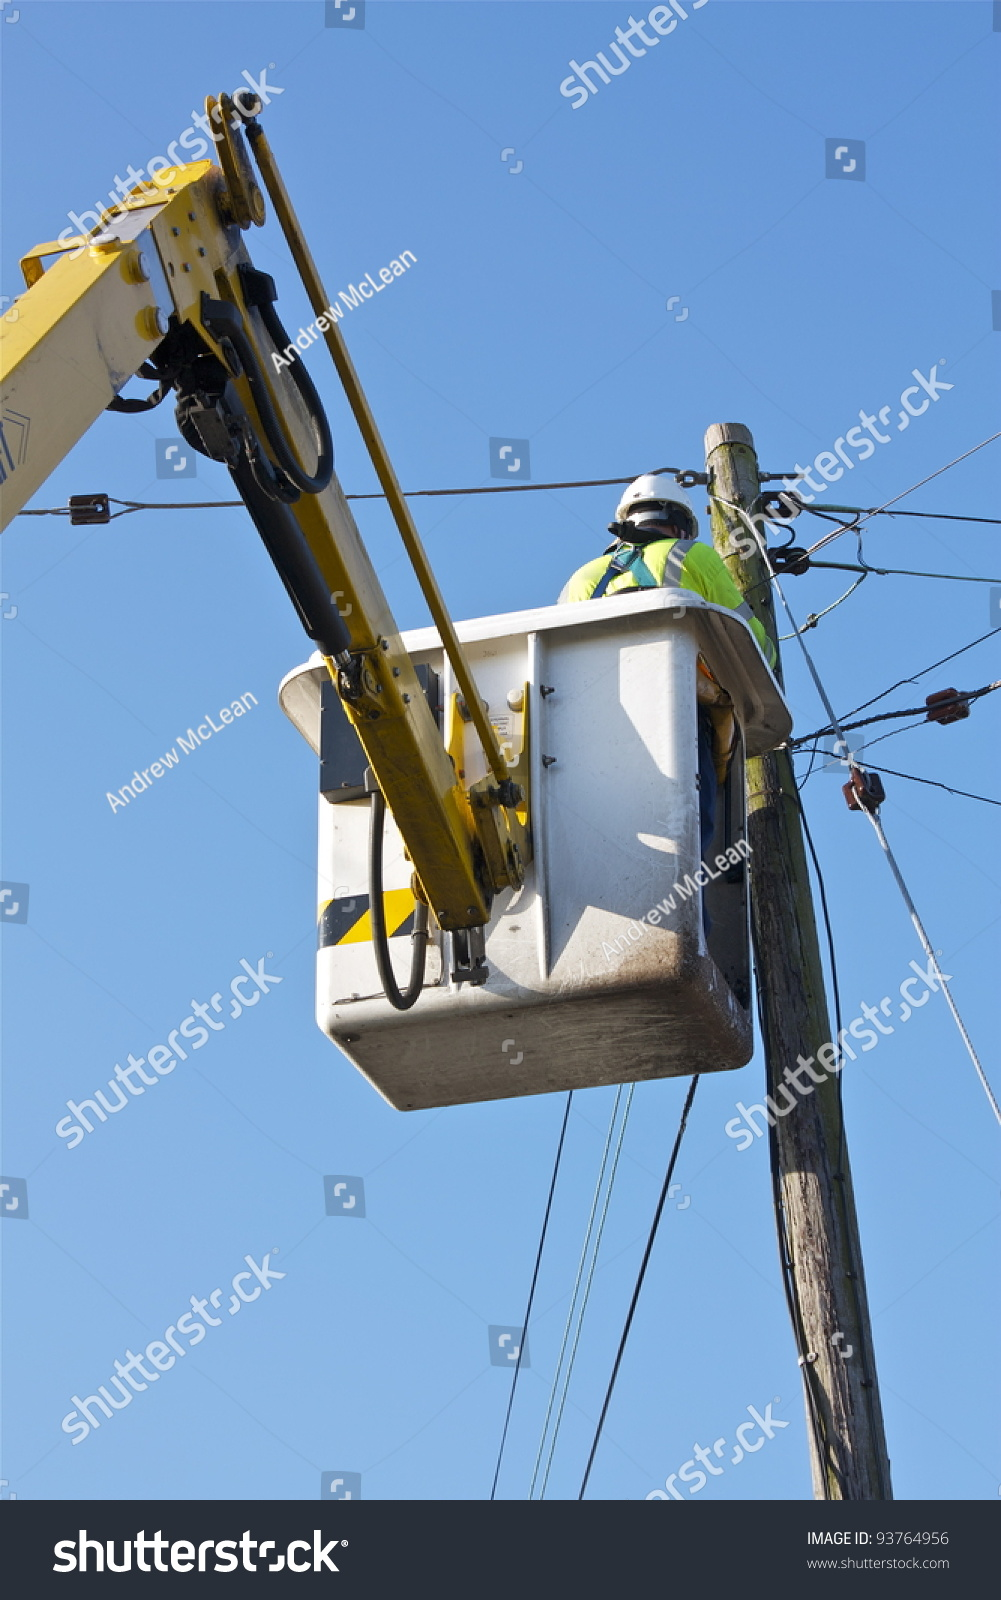 a telecomelectrical engineer using a mobile elevating